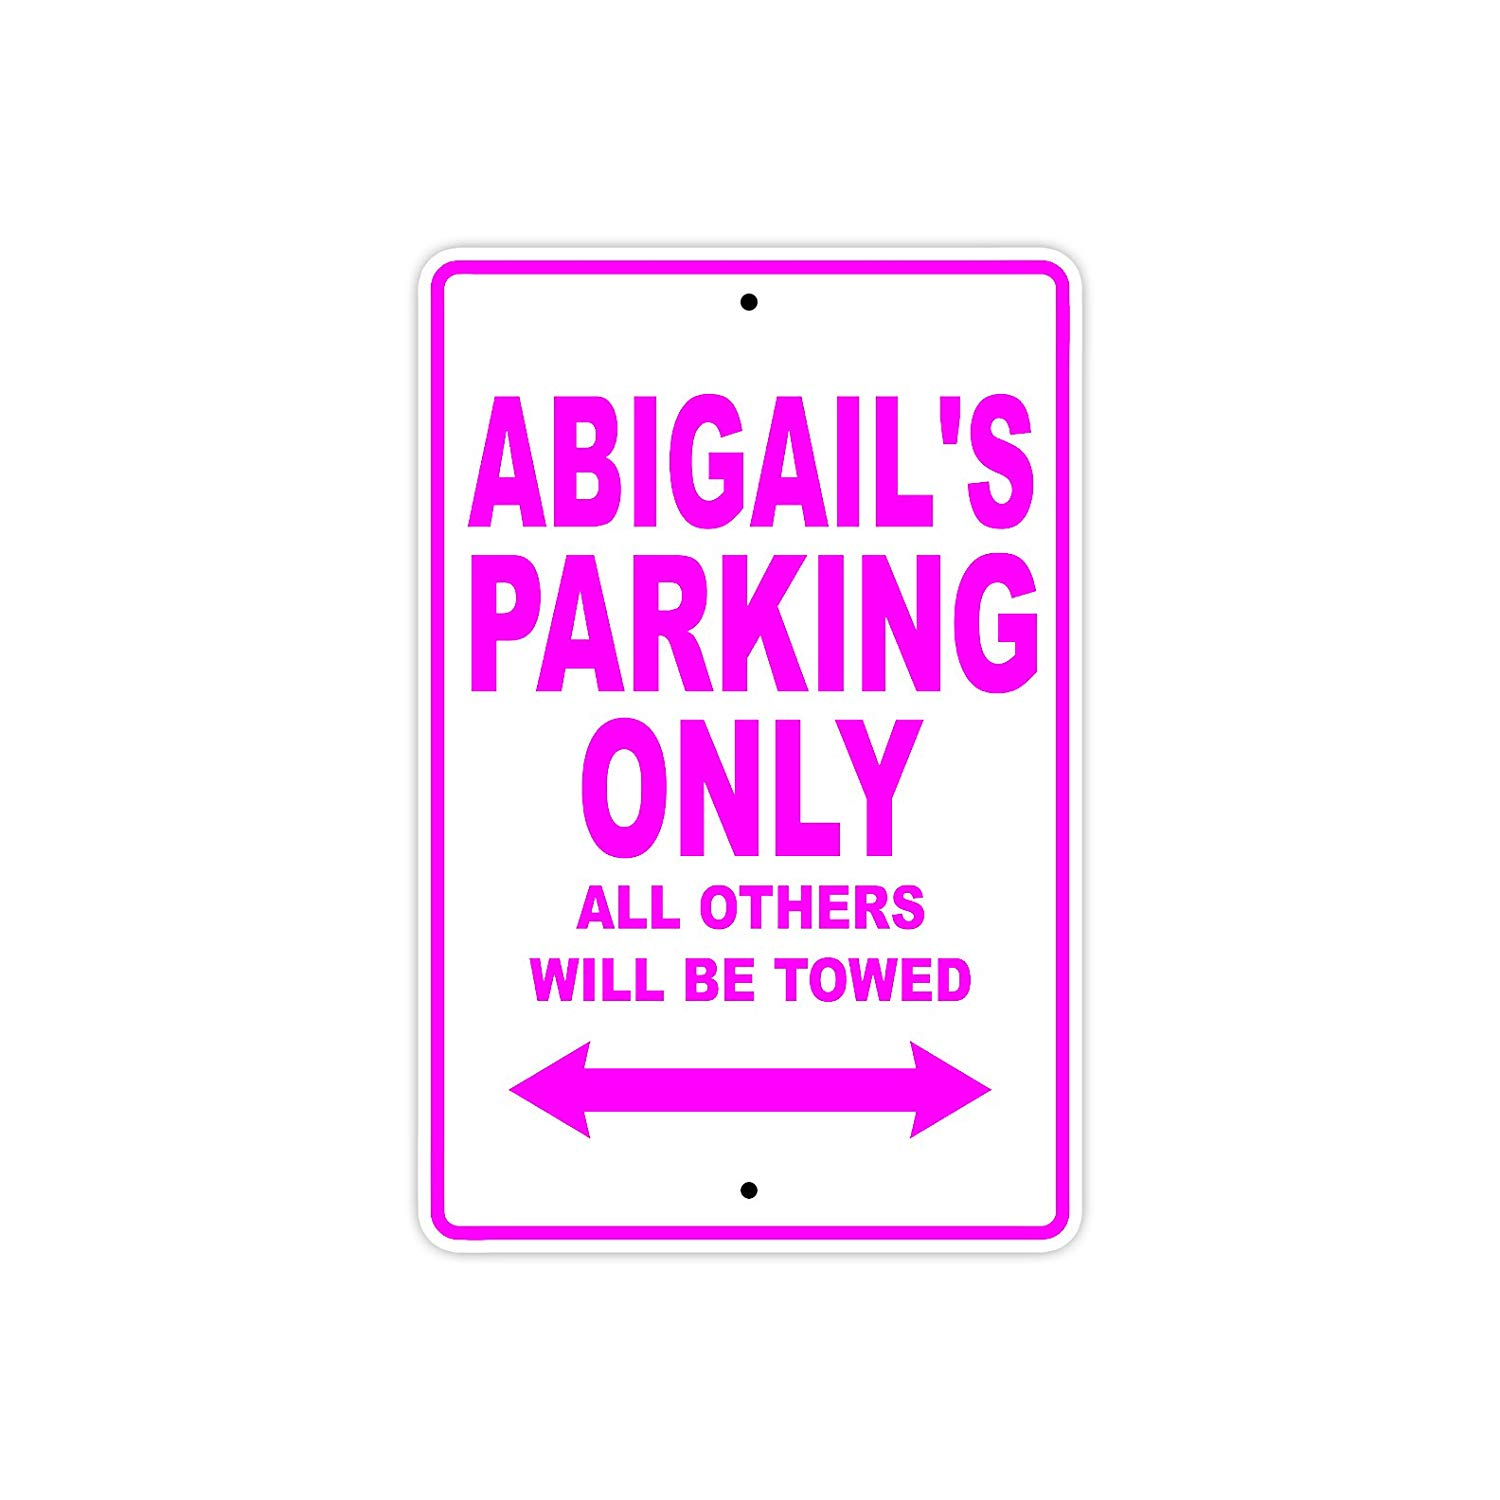 "Abigail's Parking Only All Others Will Be Towed Name Gift Novelty Metal Aluminum 8""x12"" Sign"